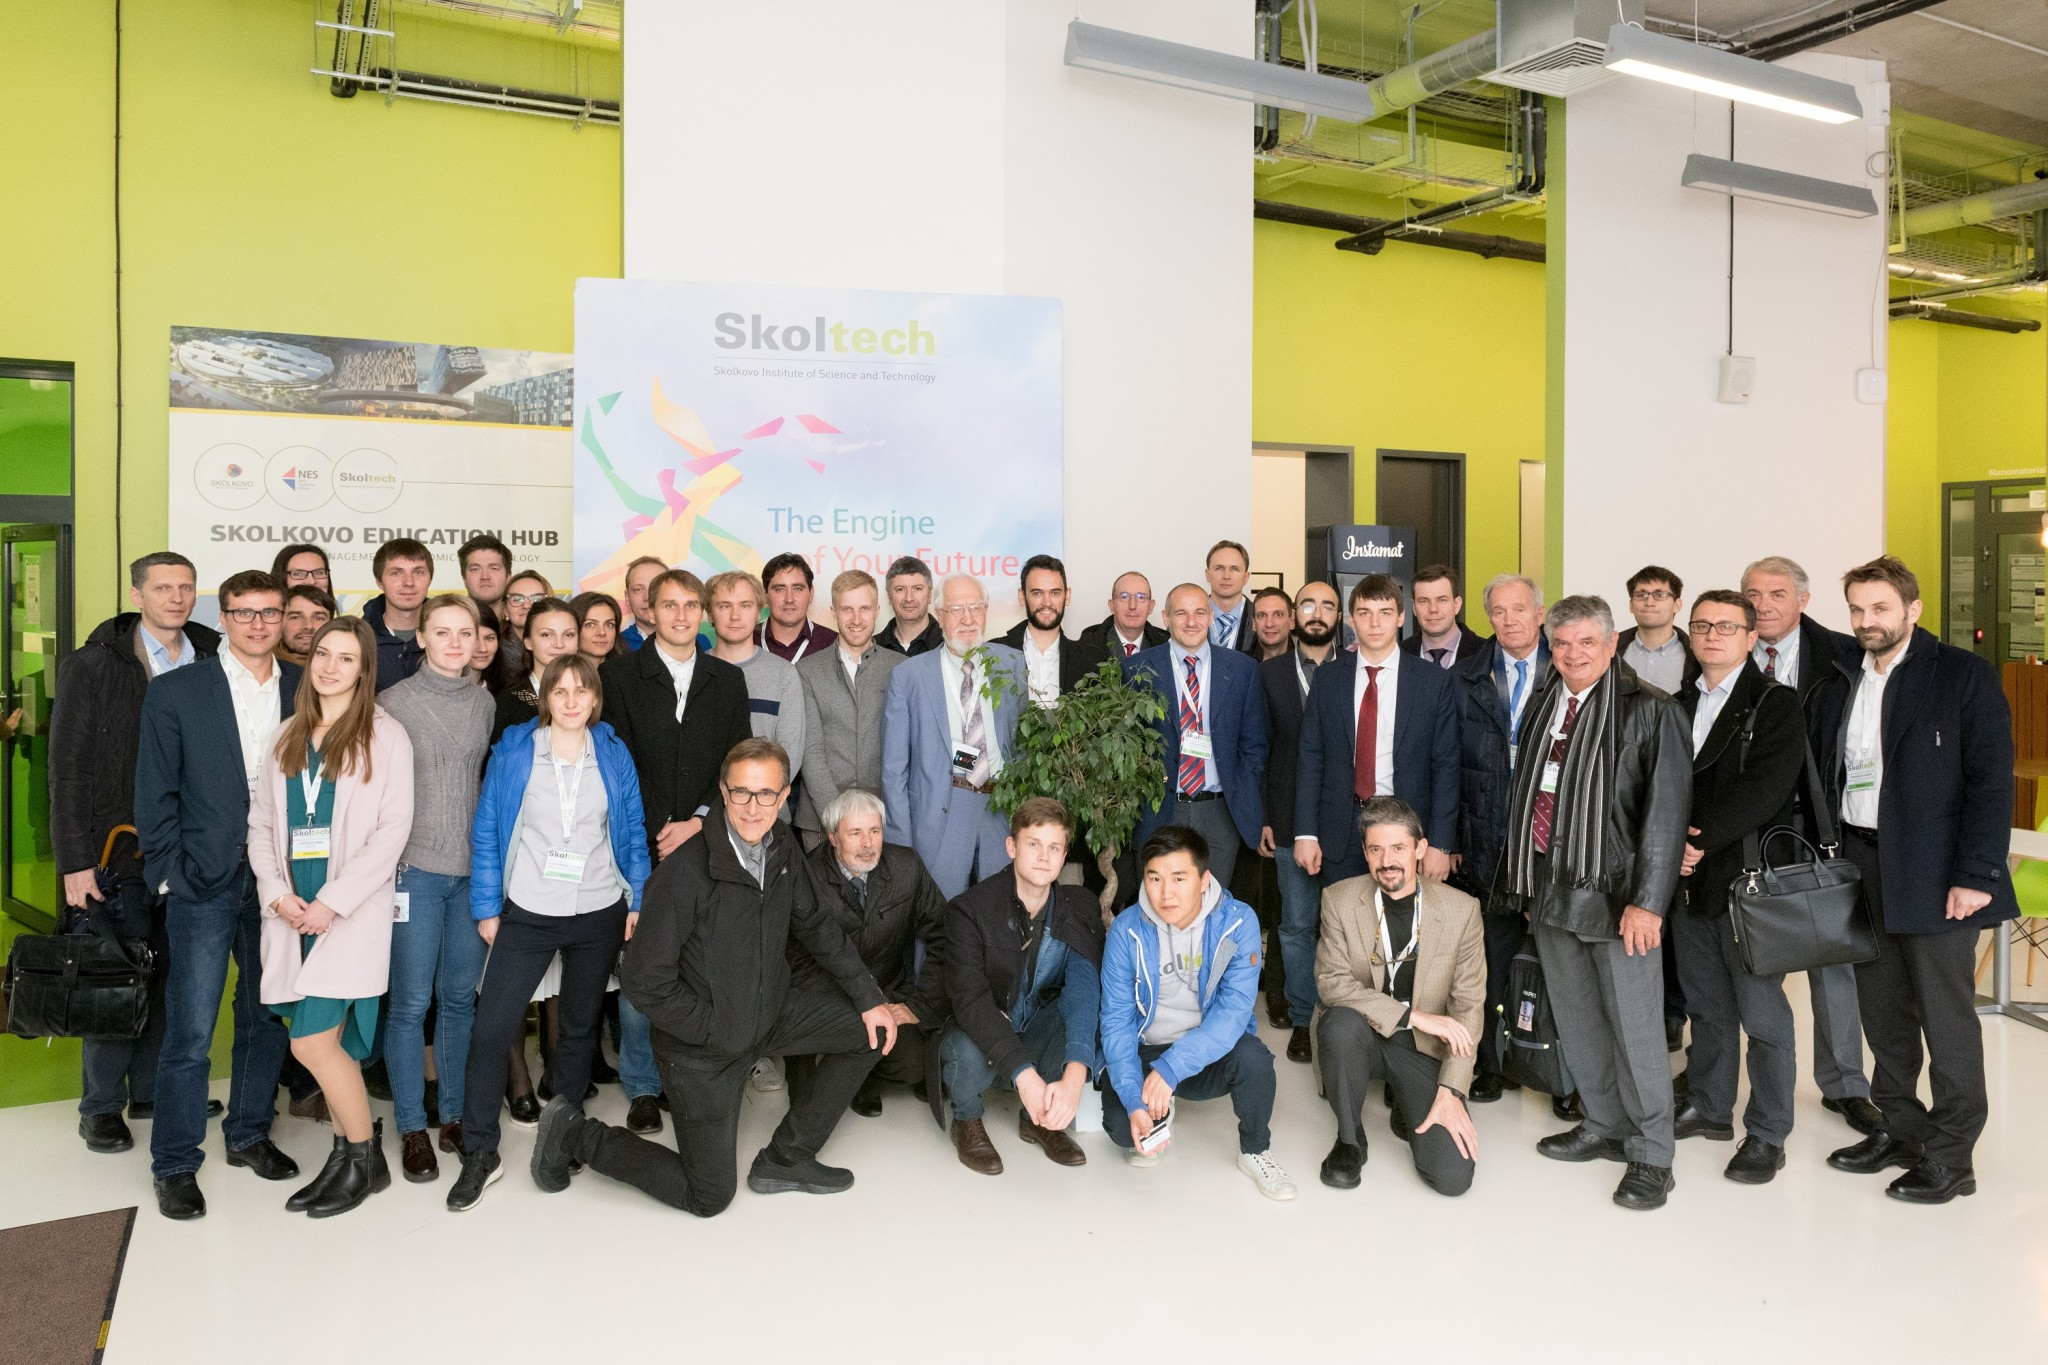 Dozens of energy systems experts from around the world pictured at Skoltech. Photo: Skoltech.